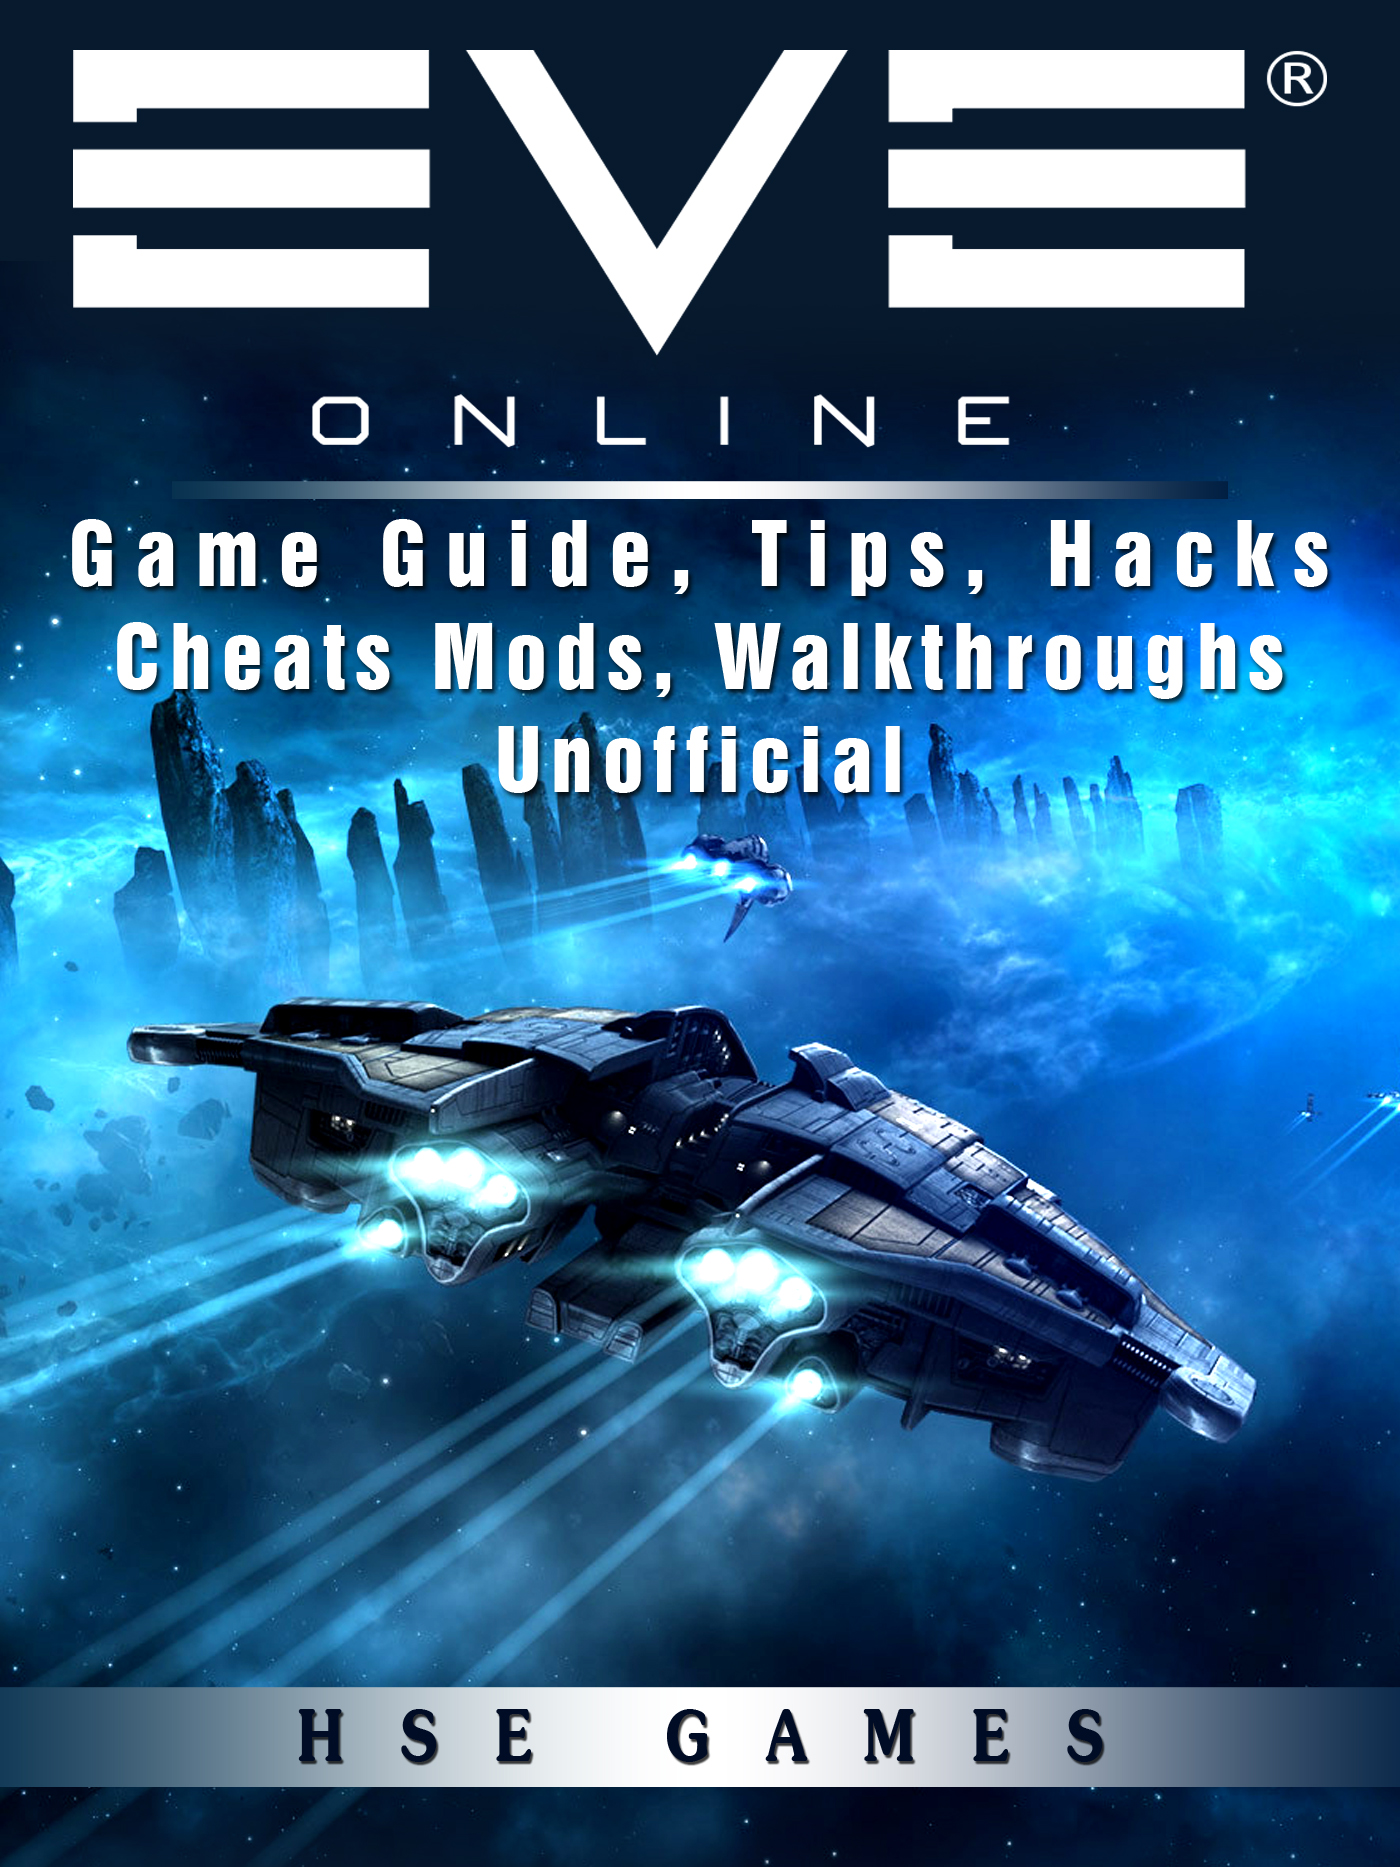 Eve Online Game Guide, Tips, Hacks Cheats Mods, Walkthroughs Unofficial